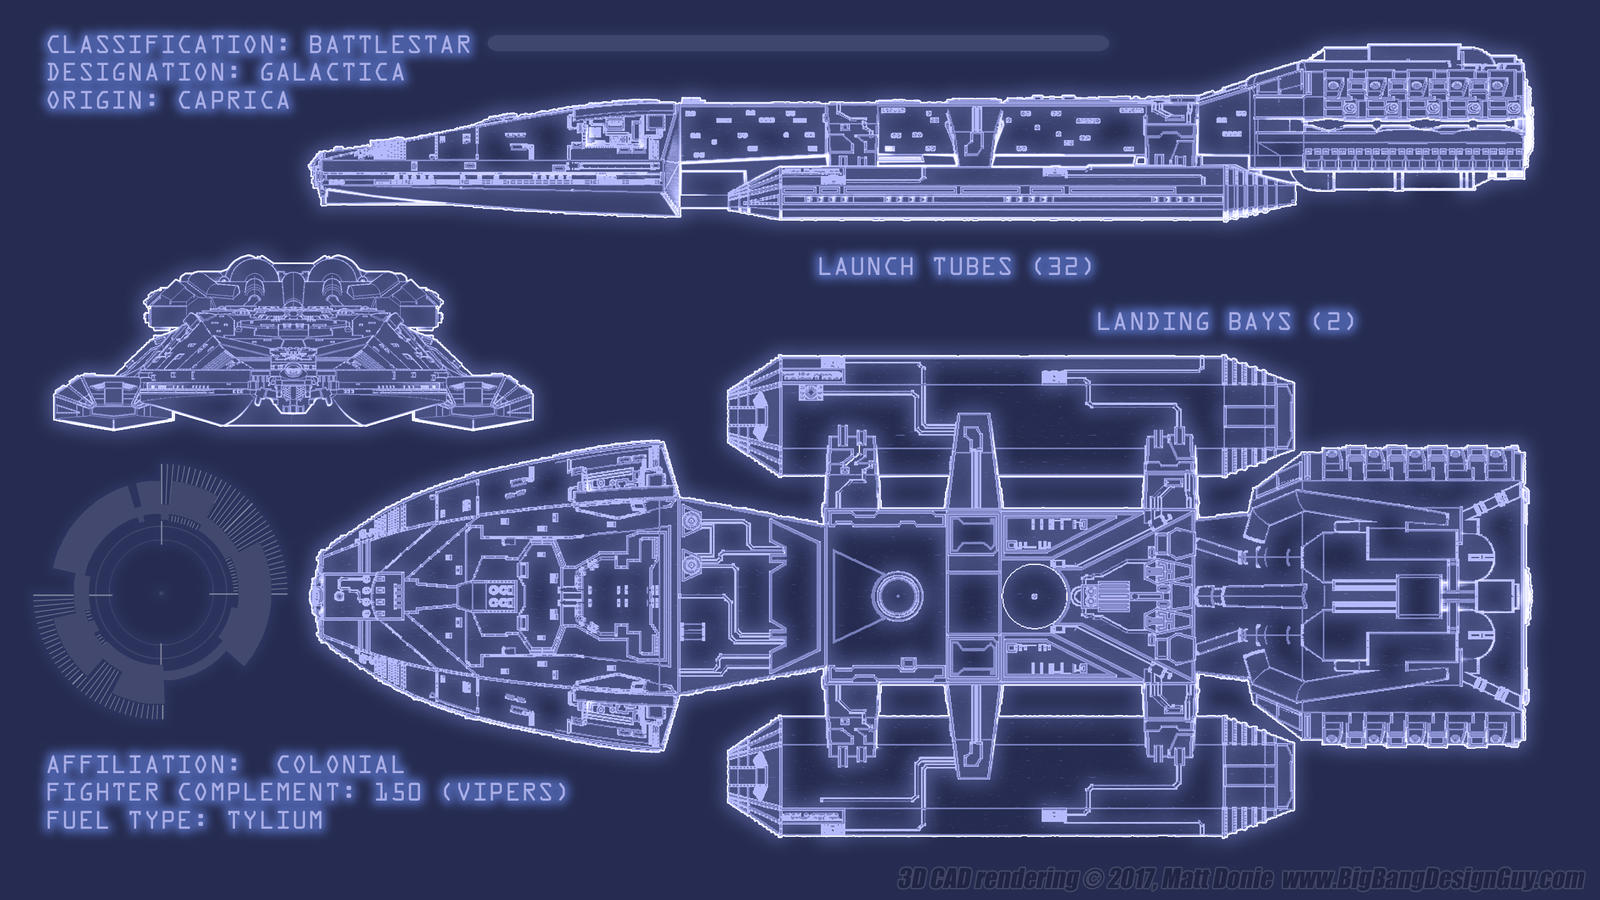 Battlestar Galactica Blueprints by Ravendeviant on DeviantArt on death star schematics, bsg 75 schematics, starship deck plans and schematics, andromeda ascendant schematics, electrostatic levitation schematics, colonial viper schematics, star wars schematics, babylon 5 schematics, battlestar pegasus schematics, spaceship schematics,